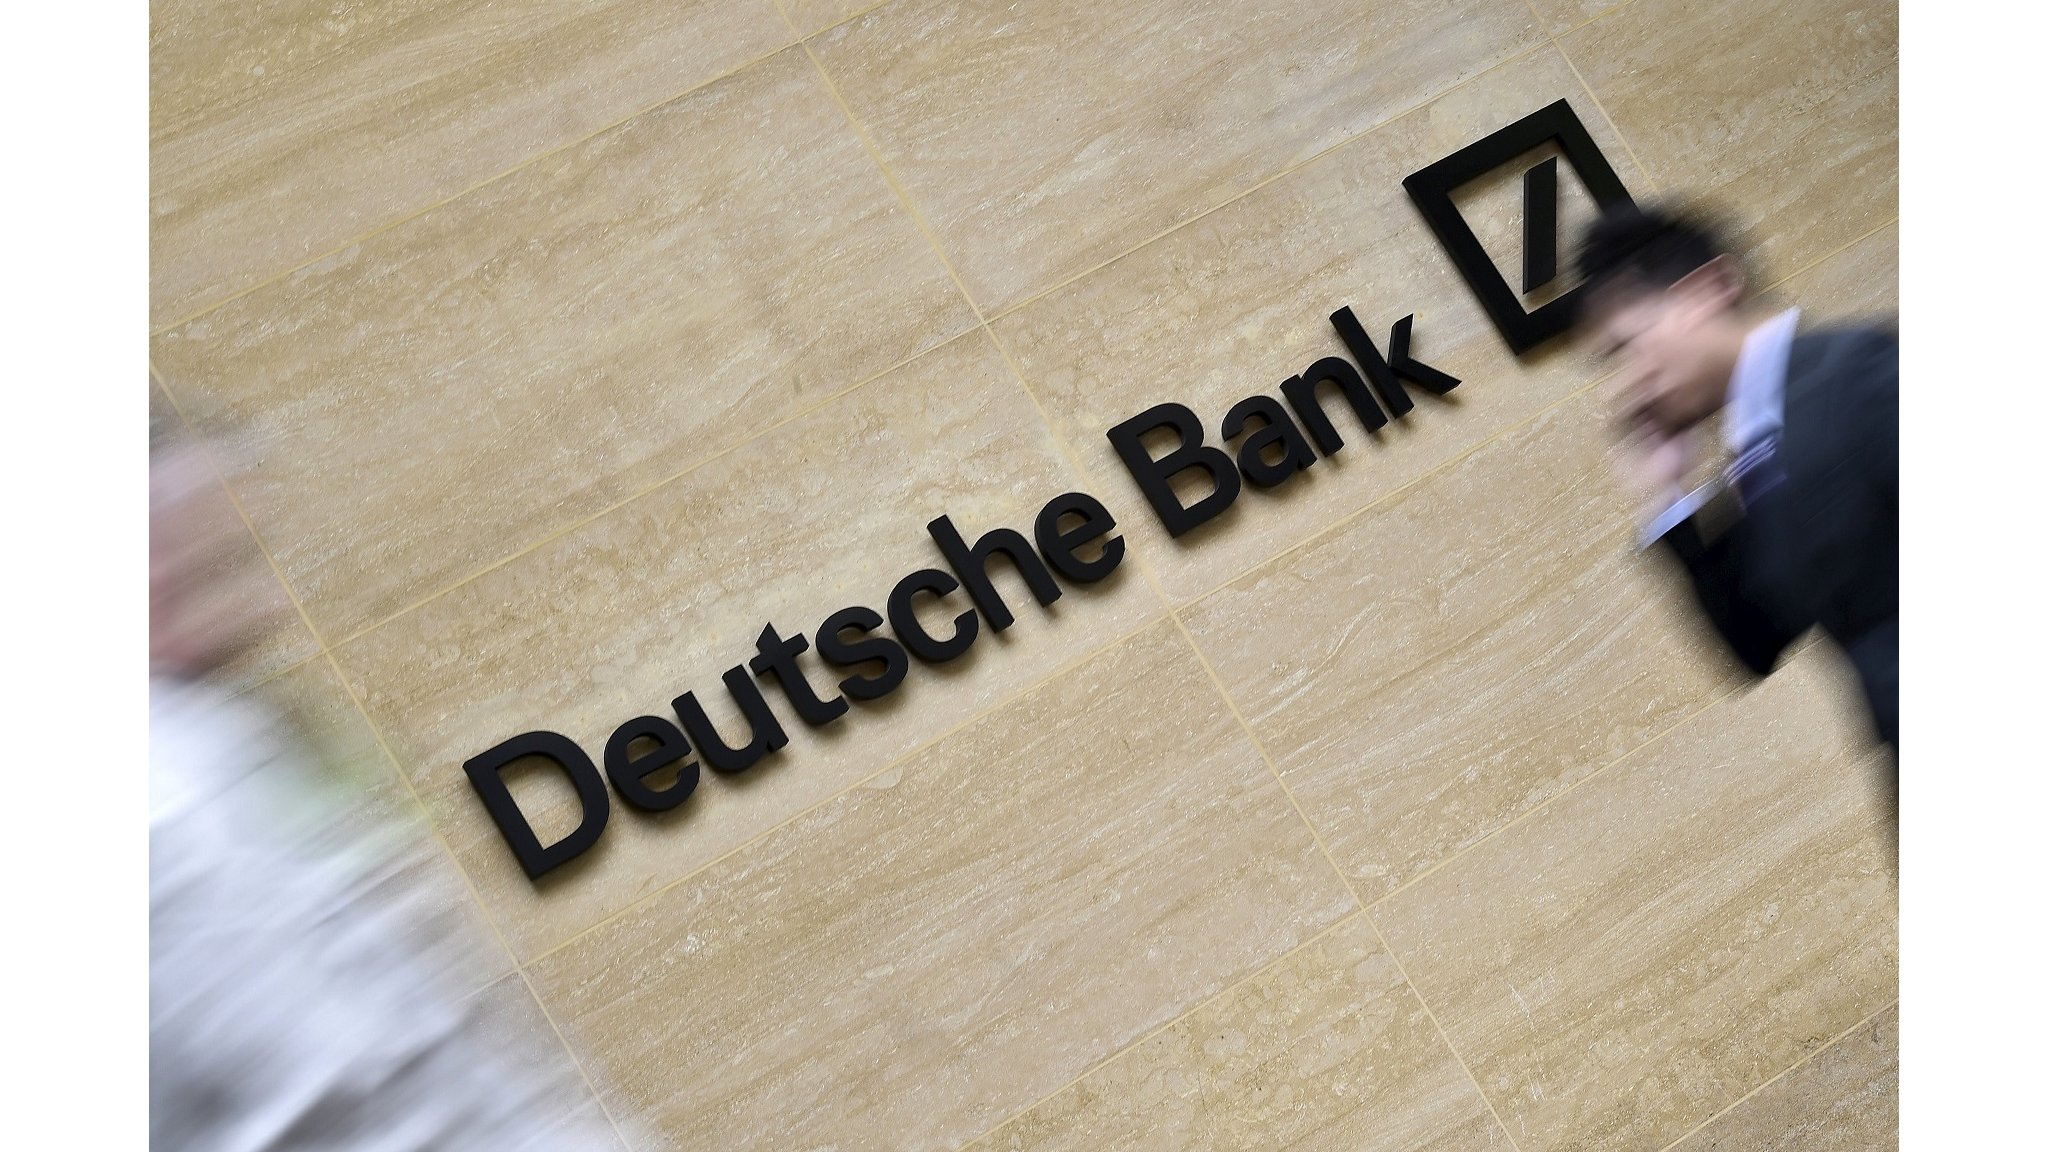 Deutsche Bank and Commerzbank in formal merger talks